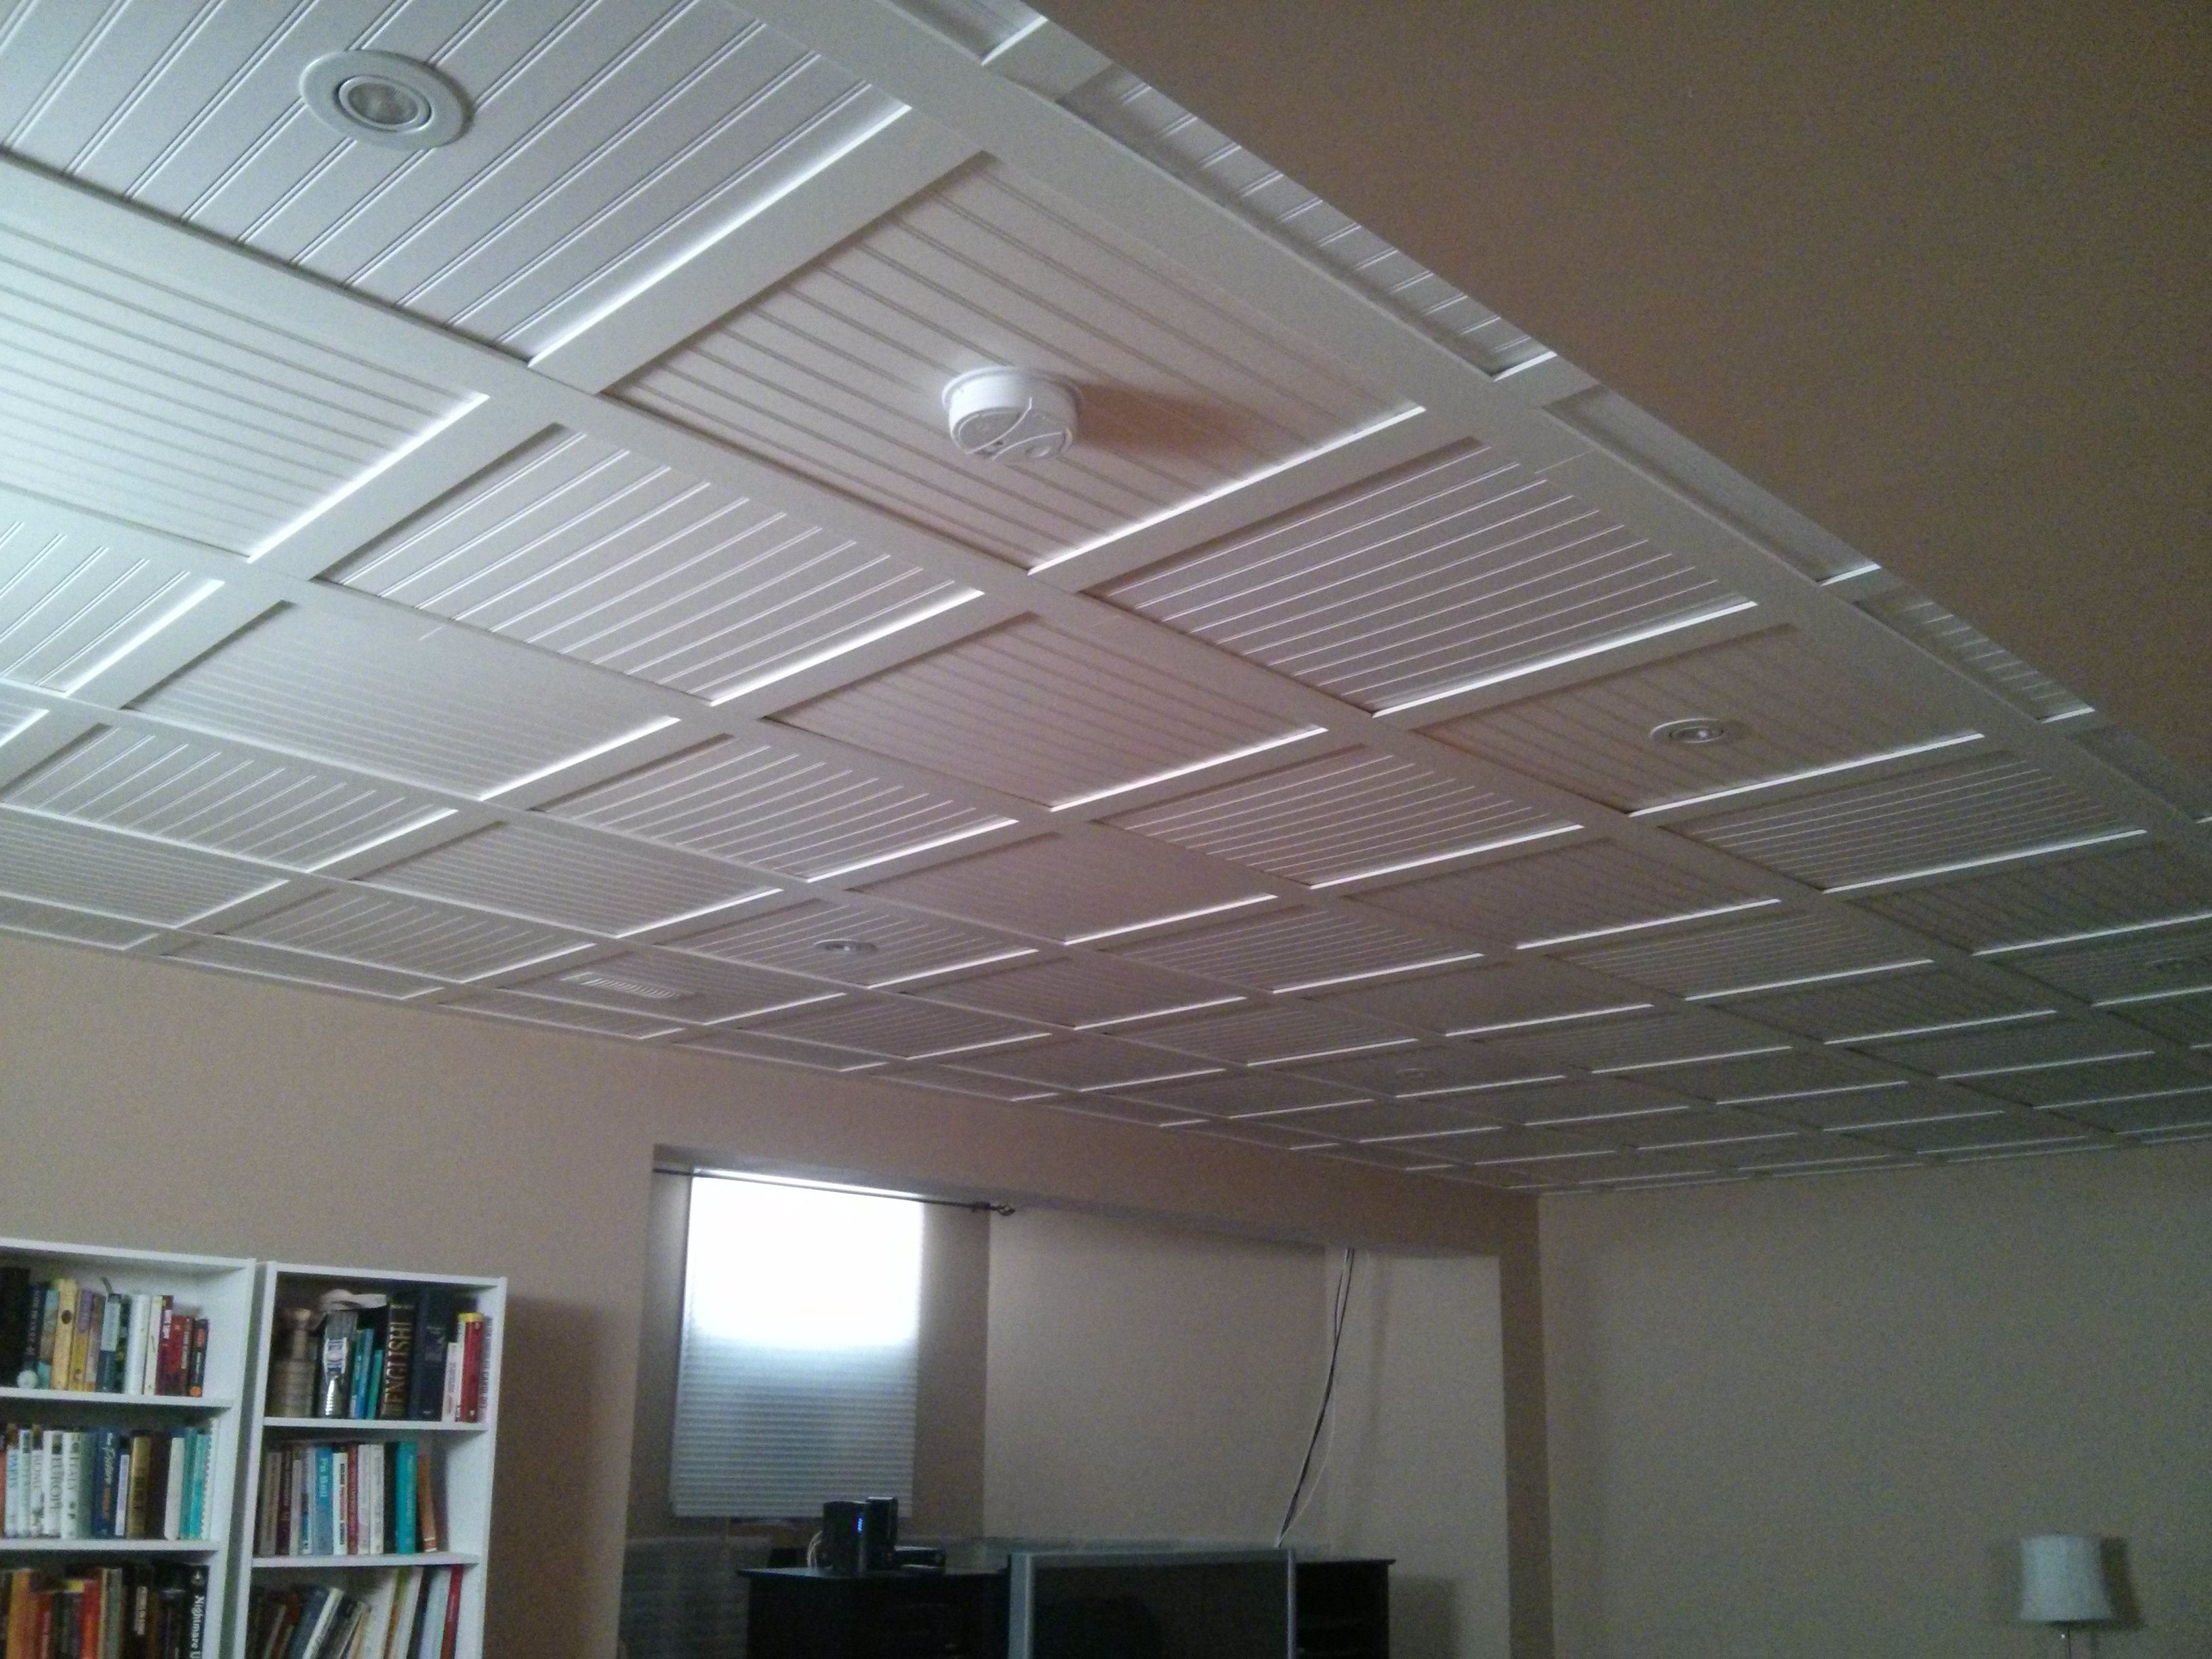 ceilings www suspended com ceiling drop manchester gradschoolfairs down tiles uk